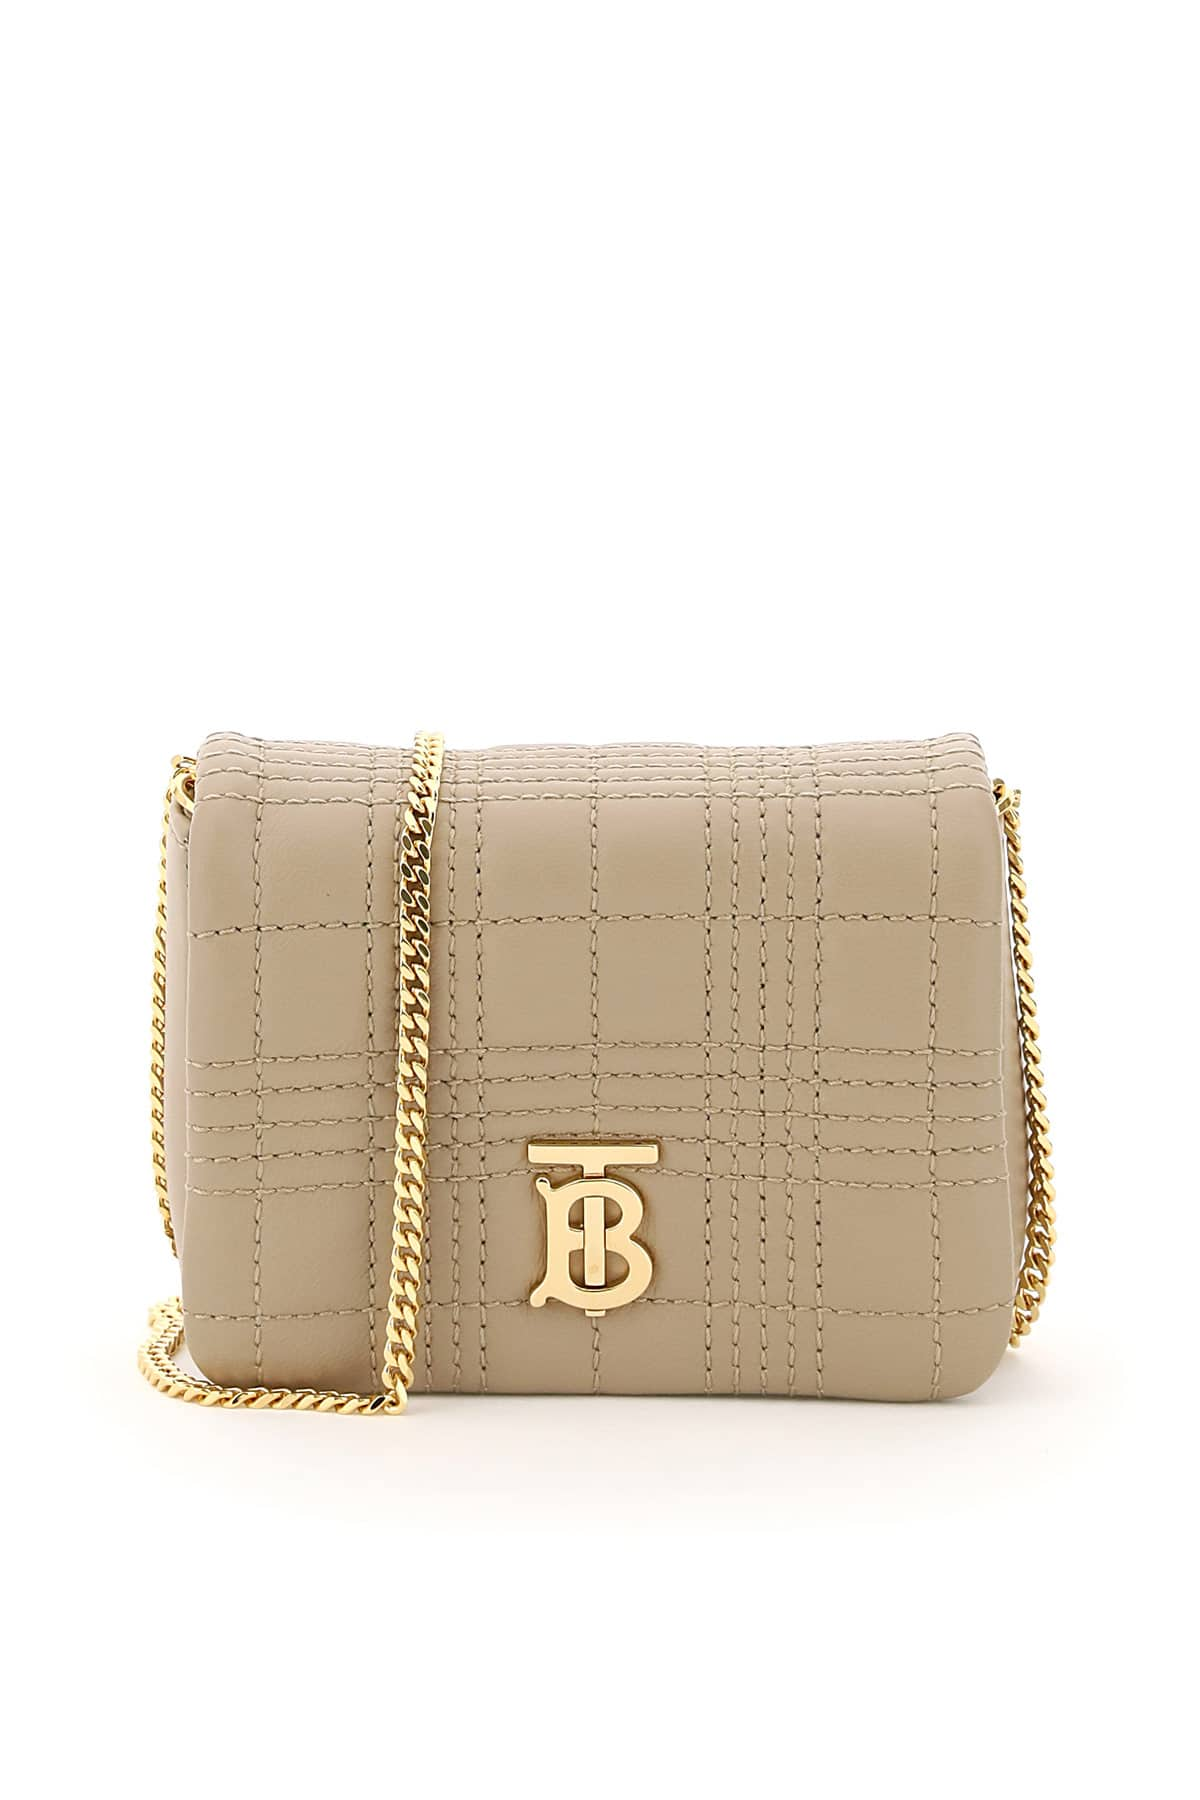 BURBERRY LOLA MICRO BAG WITH CHAIN AND TB OS Beige Leather